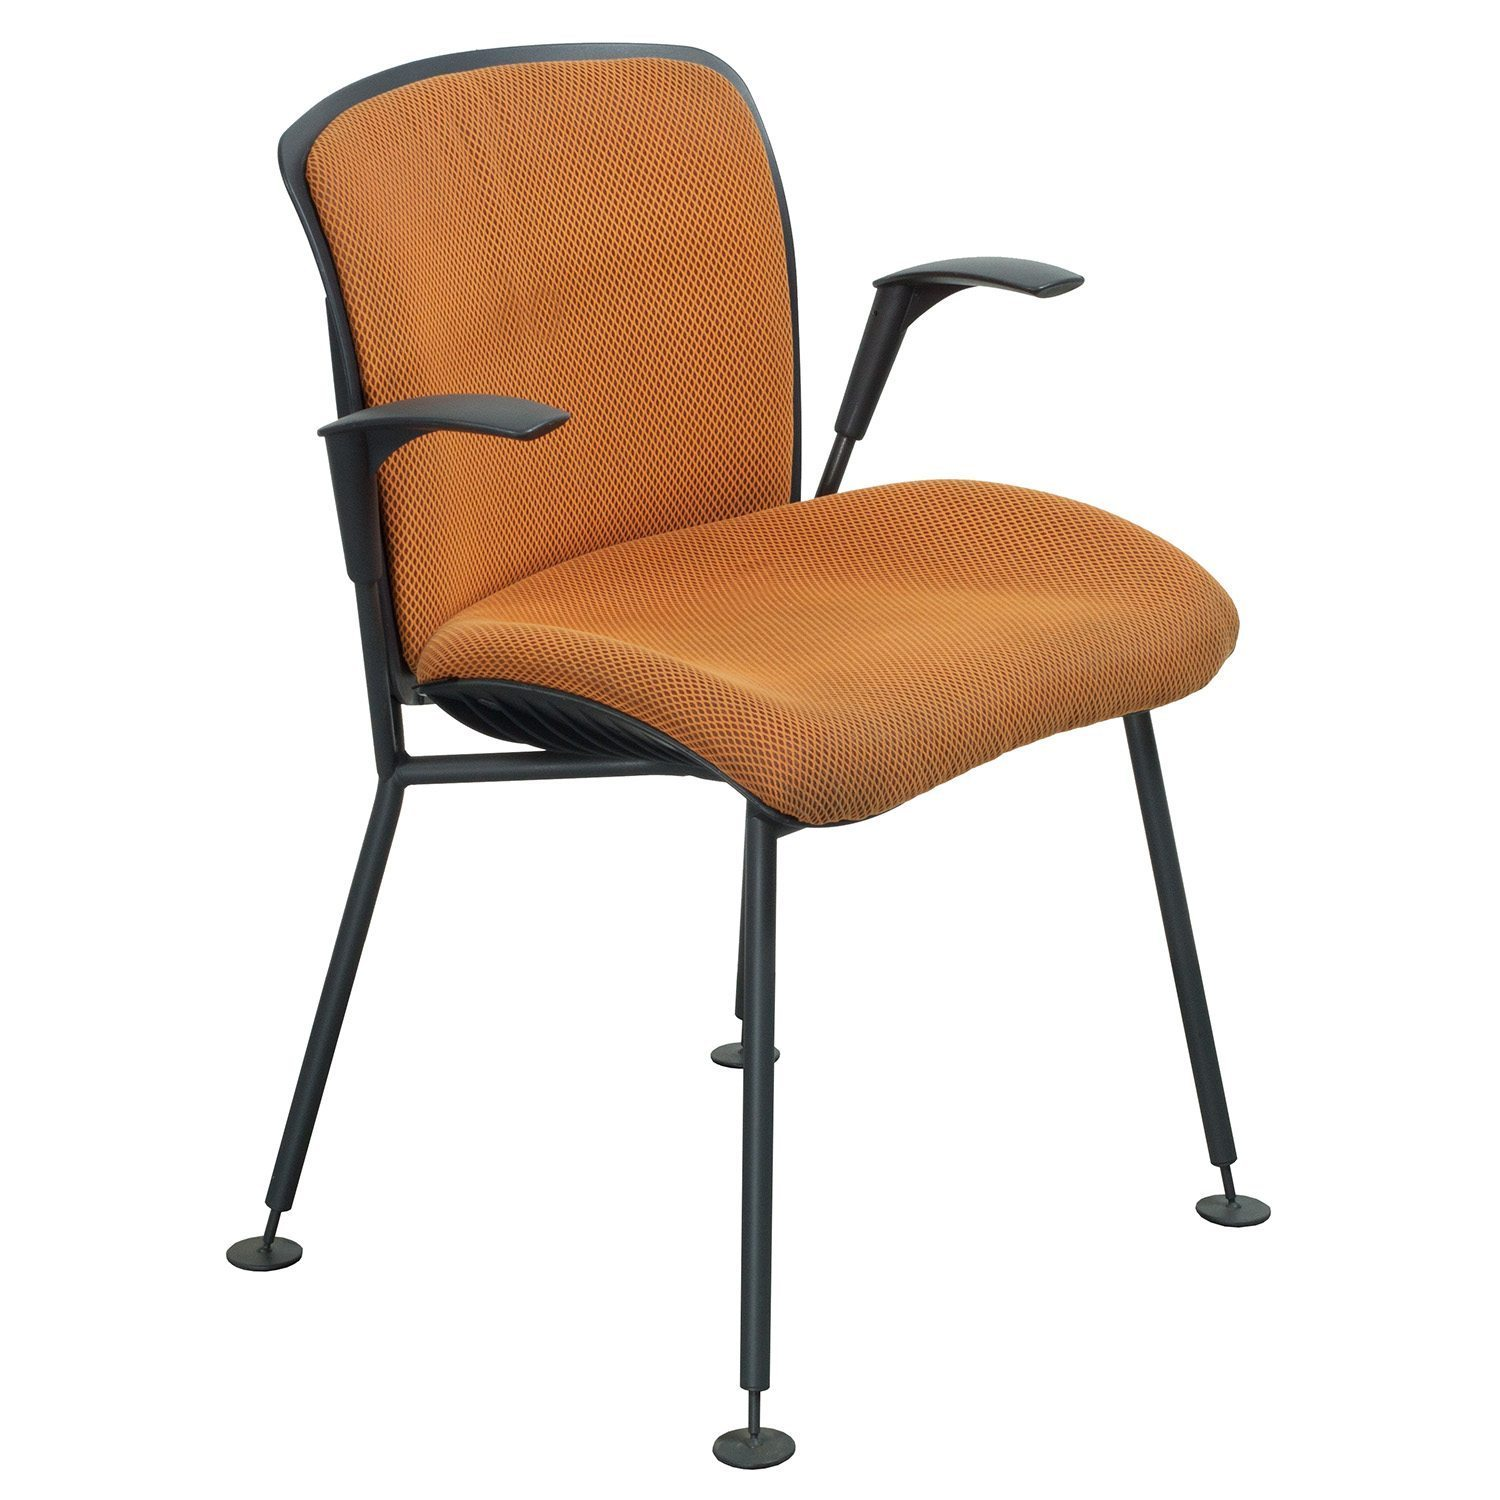 orange upholstered chair best baby rocking 2018 sitag used vito visitors